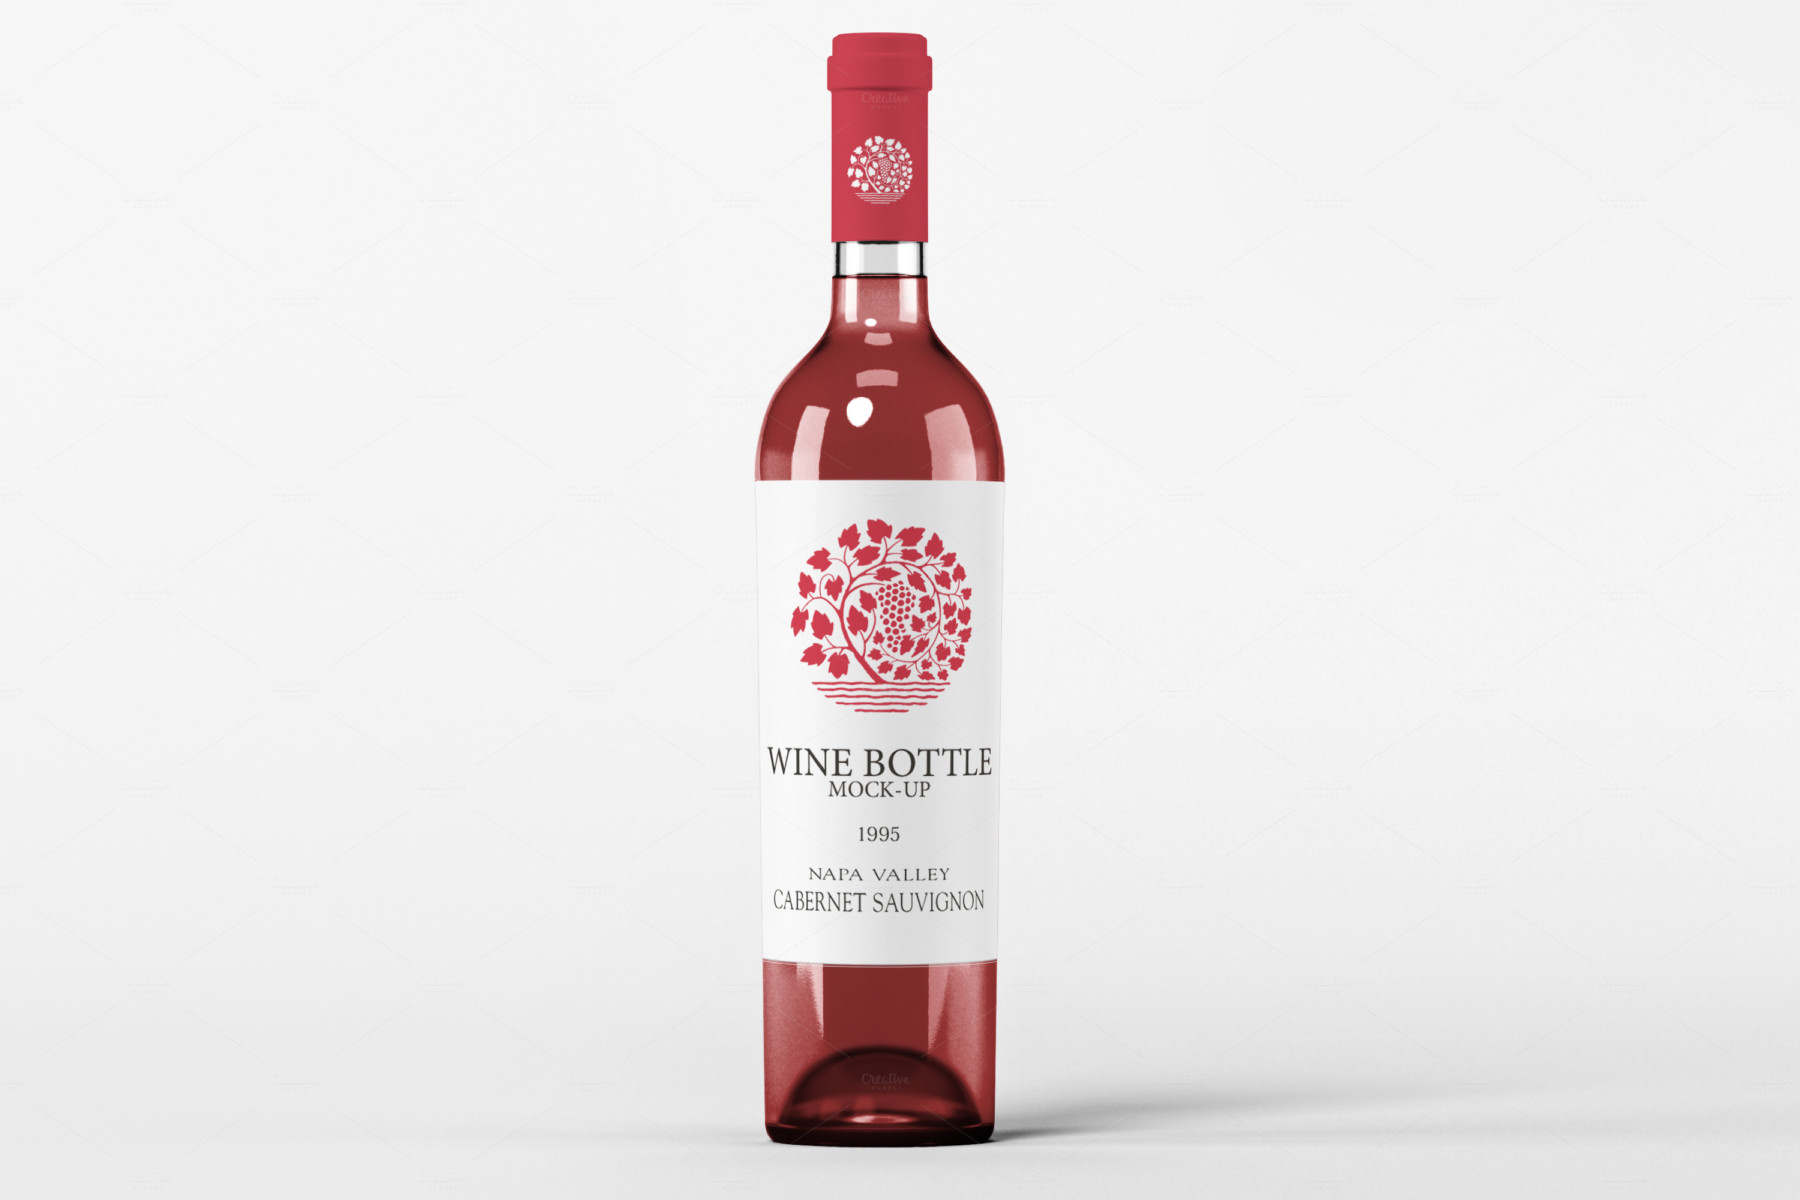 free wine beer water soda bottle mockup psd template